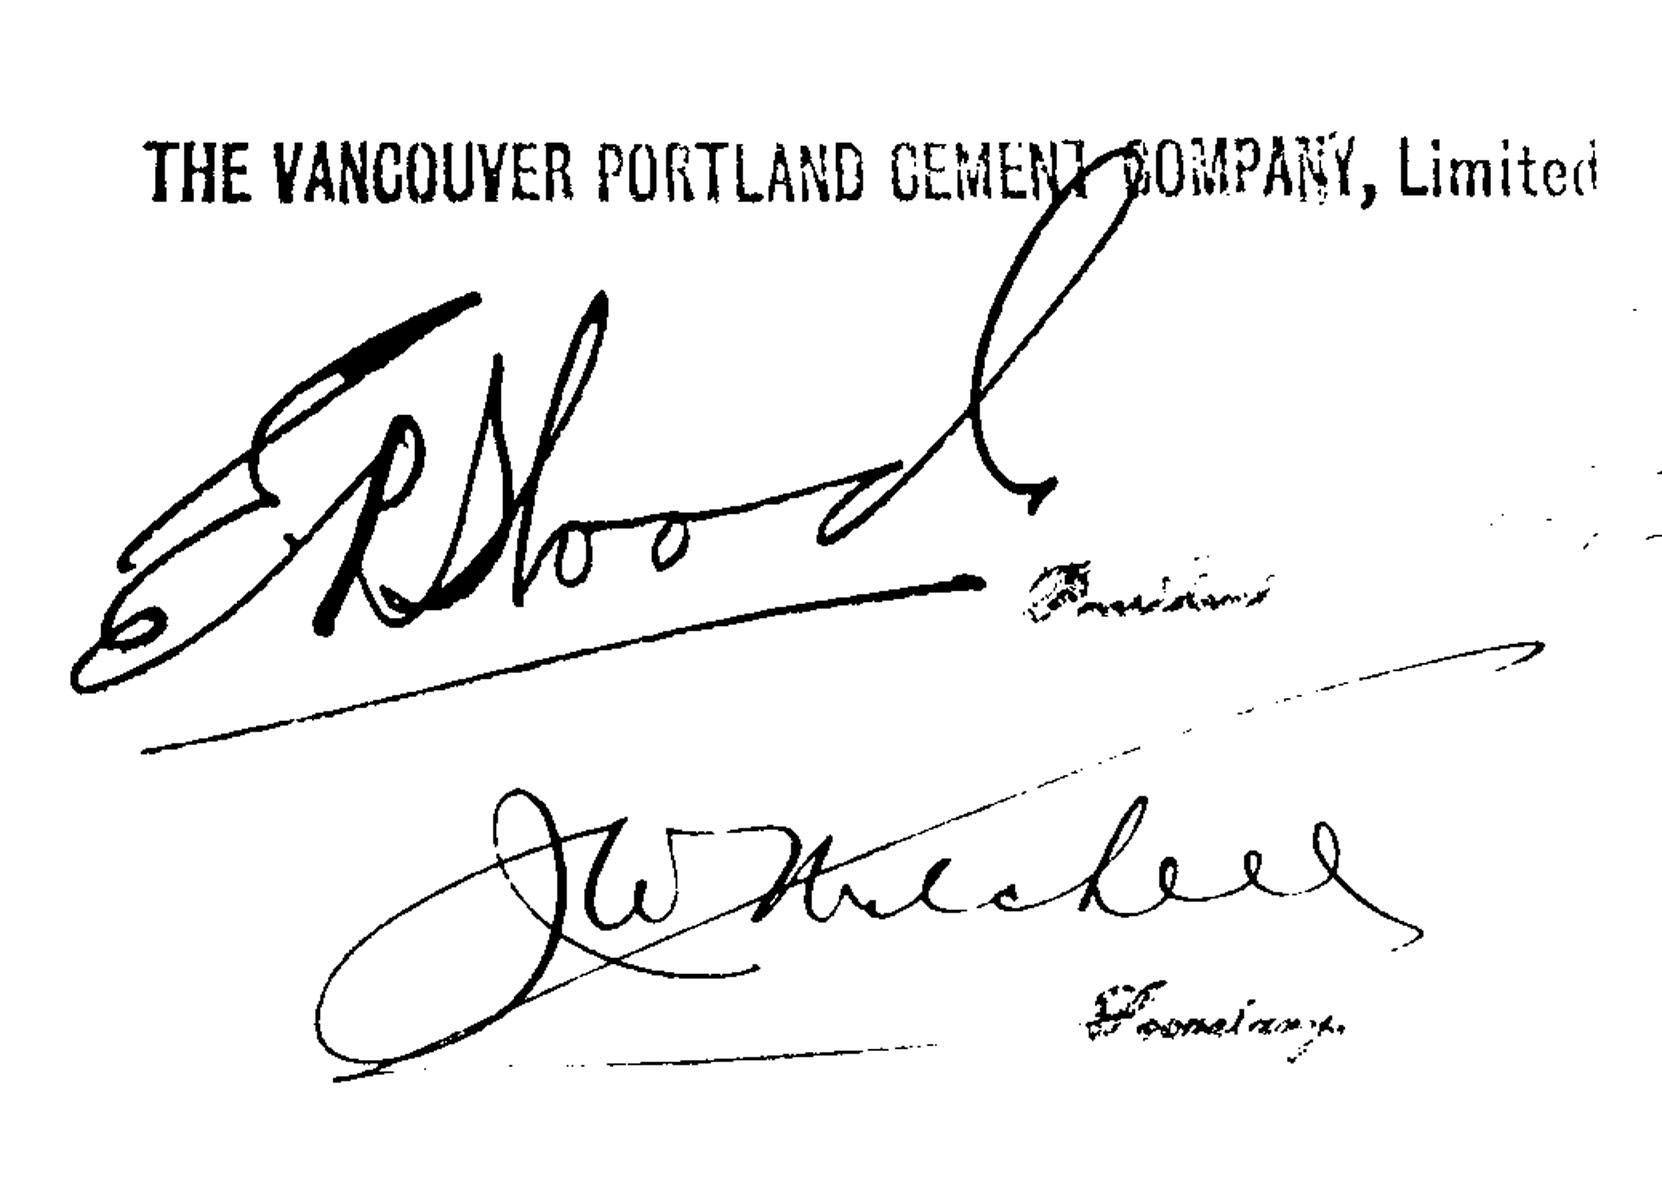 Signatures of Edward Rogers Wood and John Worth Mitchell on a vancouver Portland Cement Company document, 1910 (Author's collection)